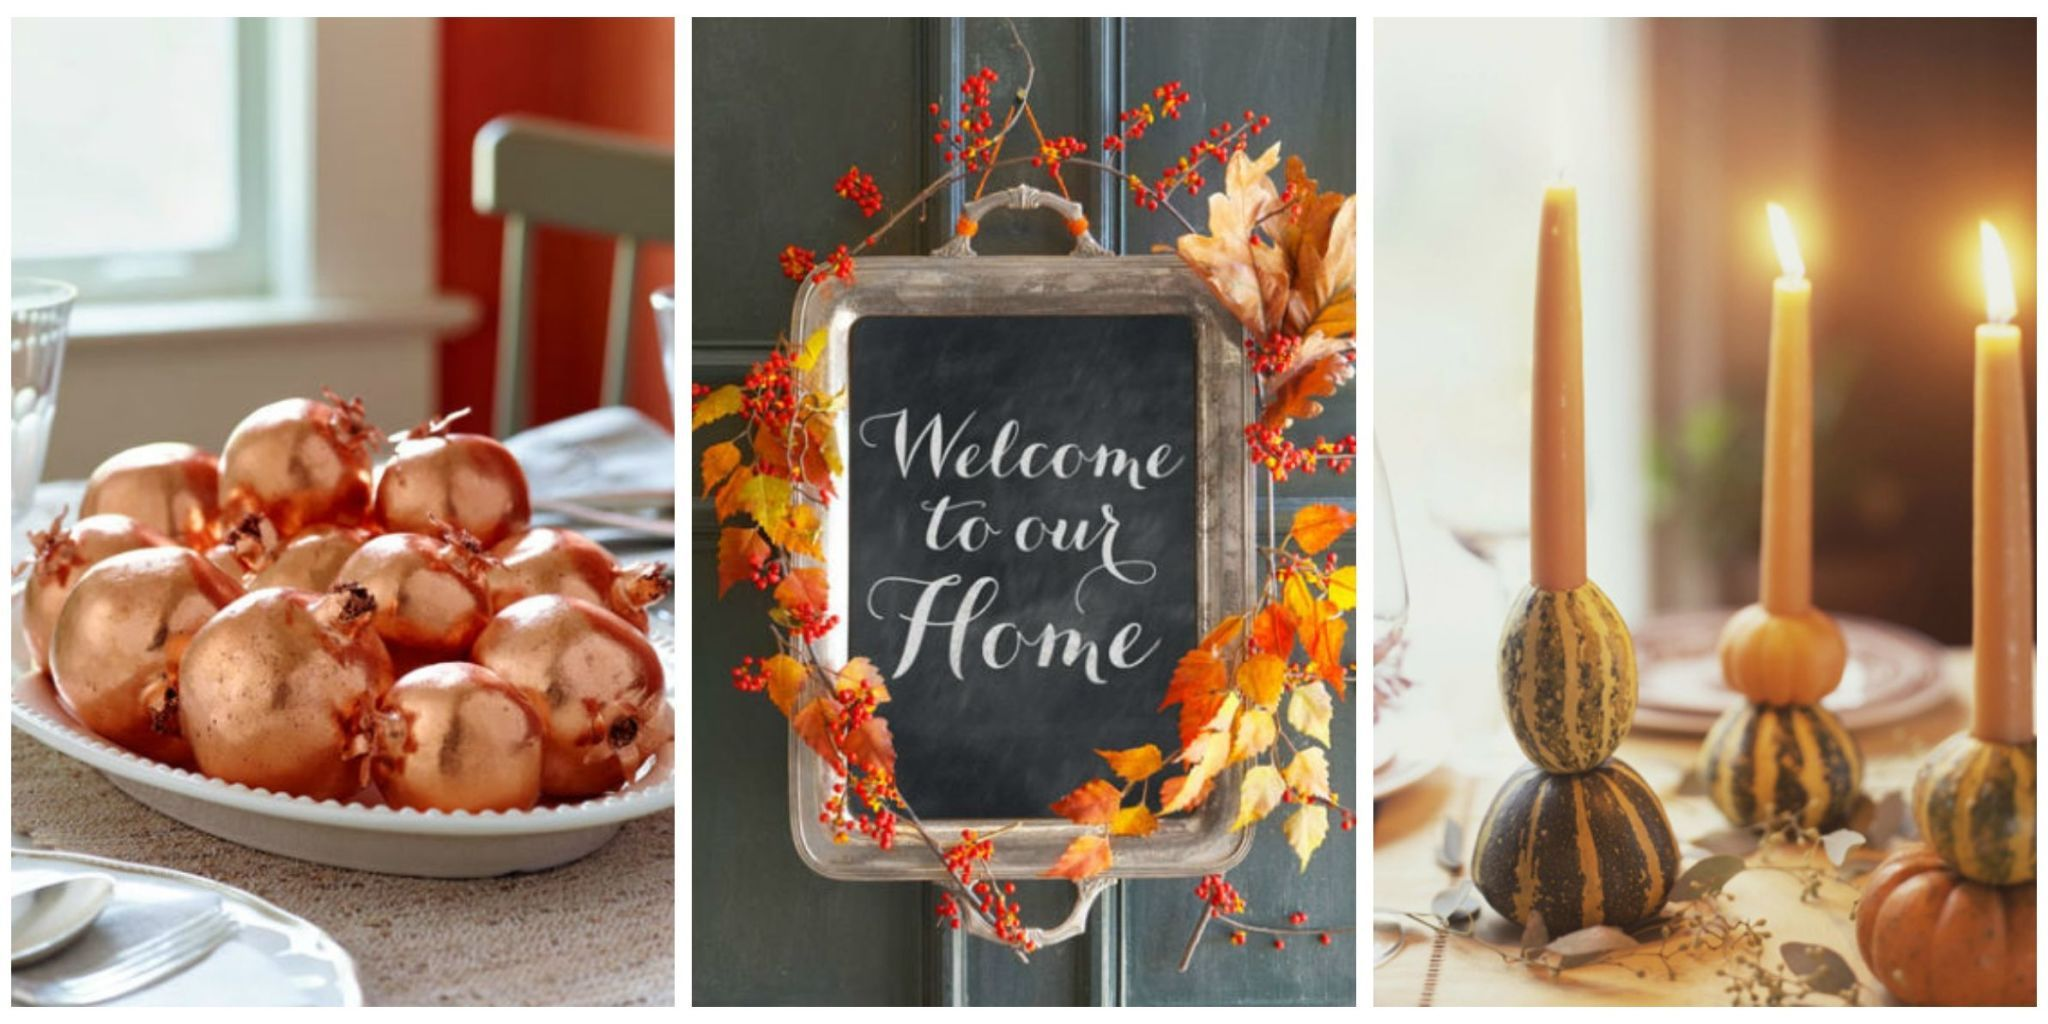 Ordinaire These Beautiful DIY Decor Ideas Will Spruce Up Your Home And Your  Thanksgiving Table.